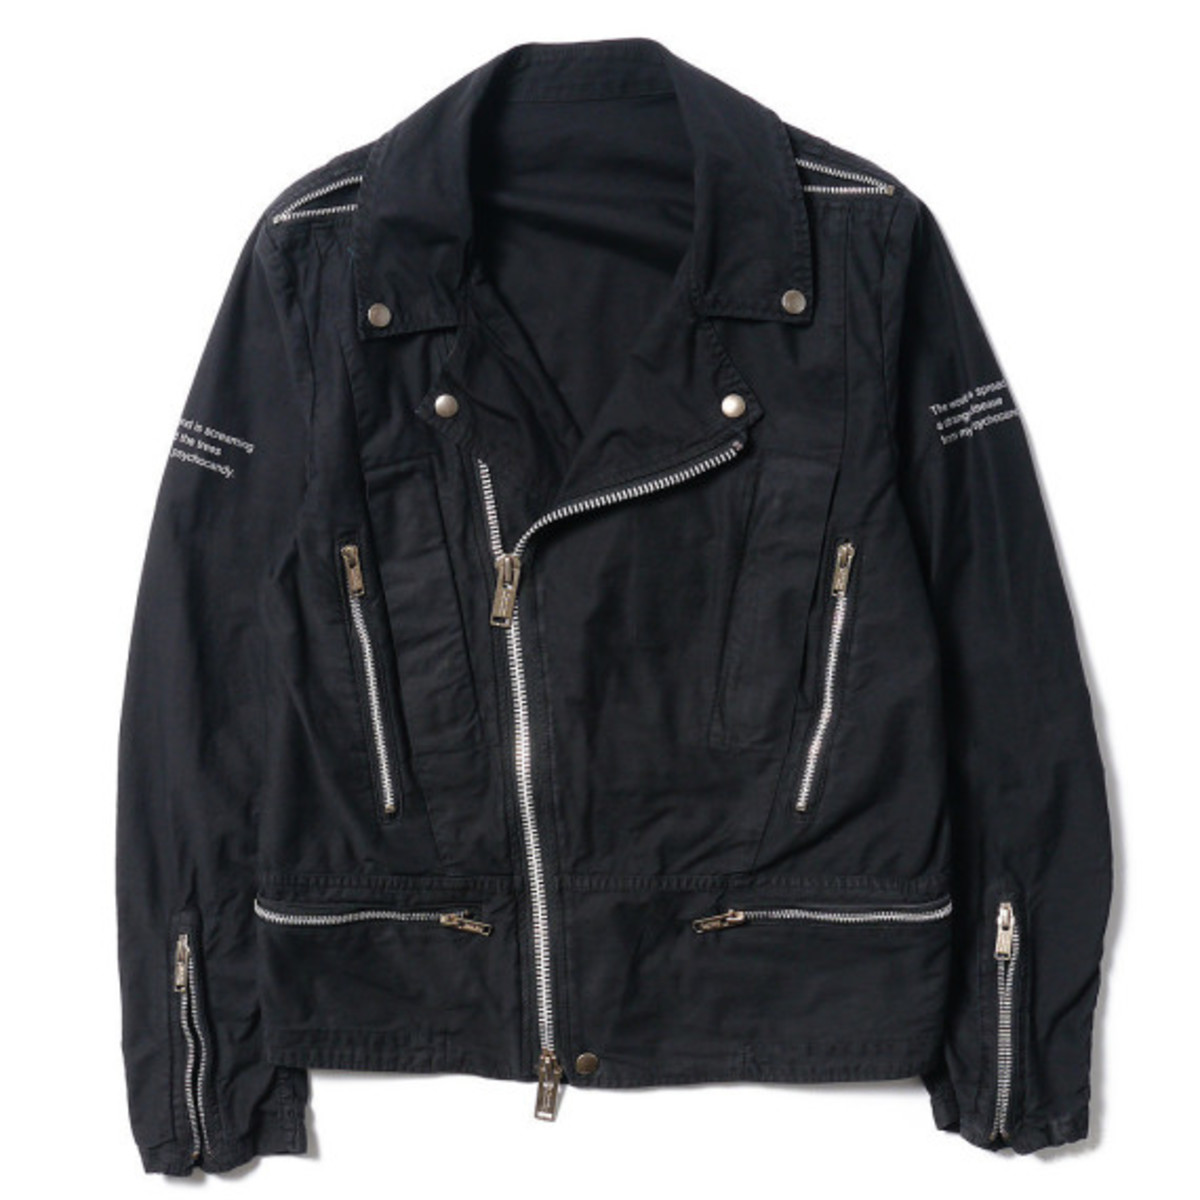 undercover-m4201-2-jacket-05